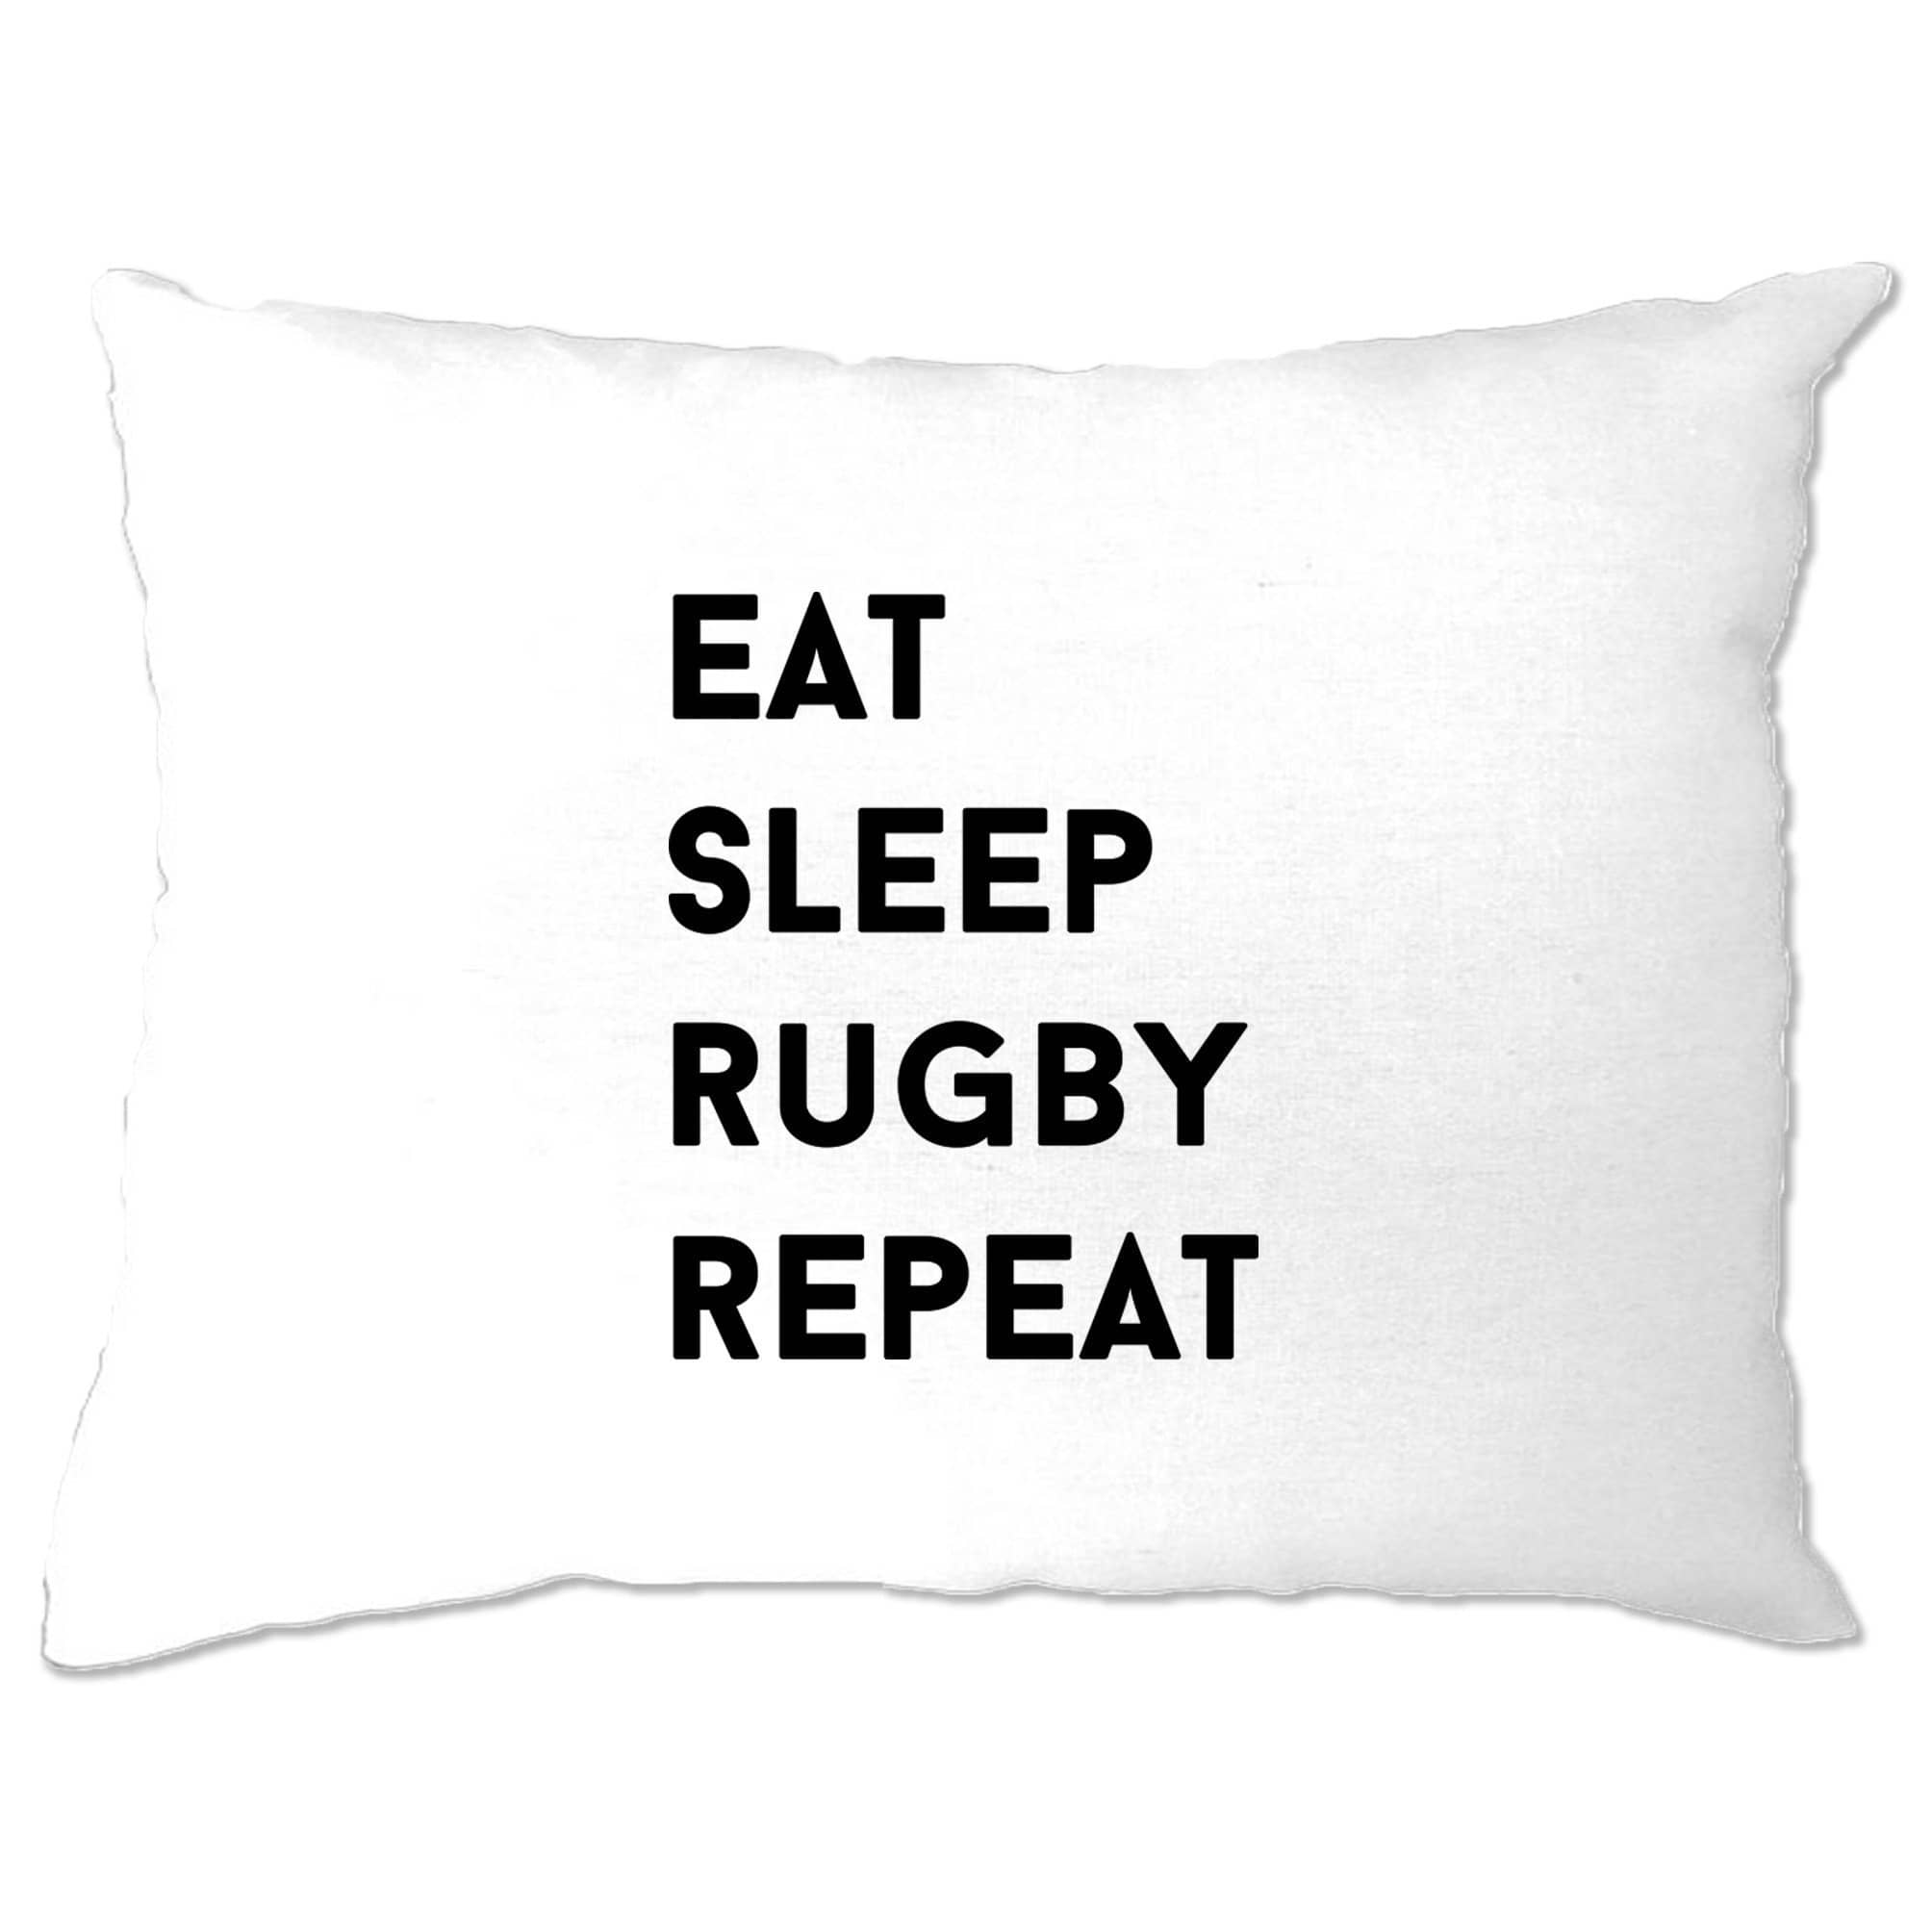 Novelty Pillow Case Eat, Sleep, Rugby, Repeat Slogan